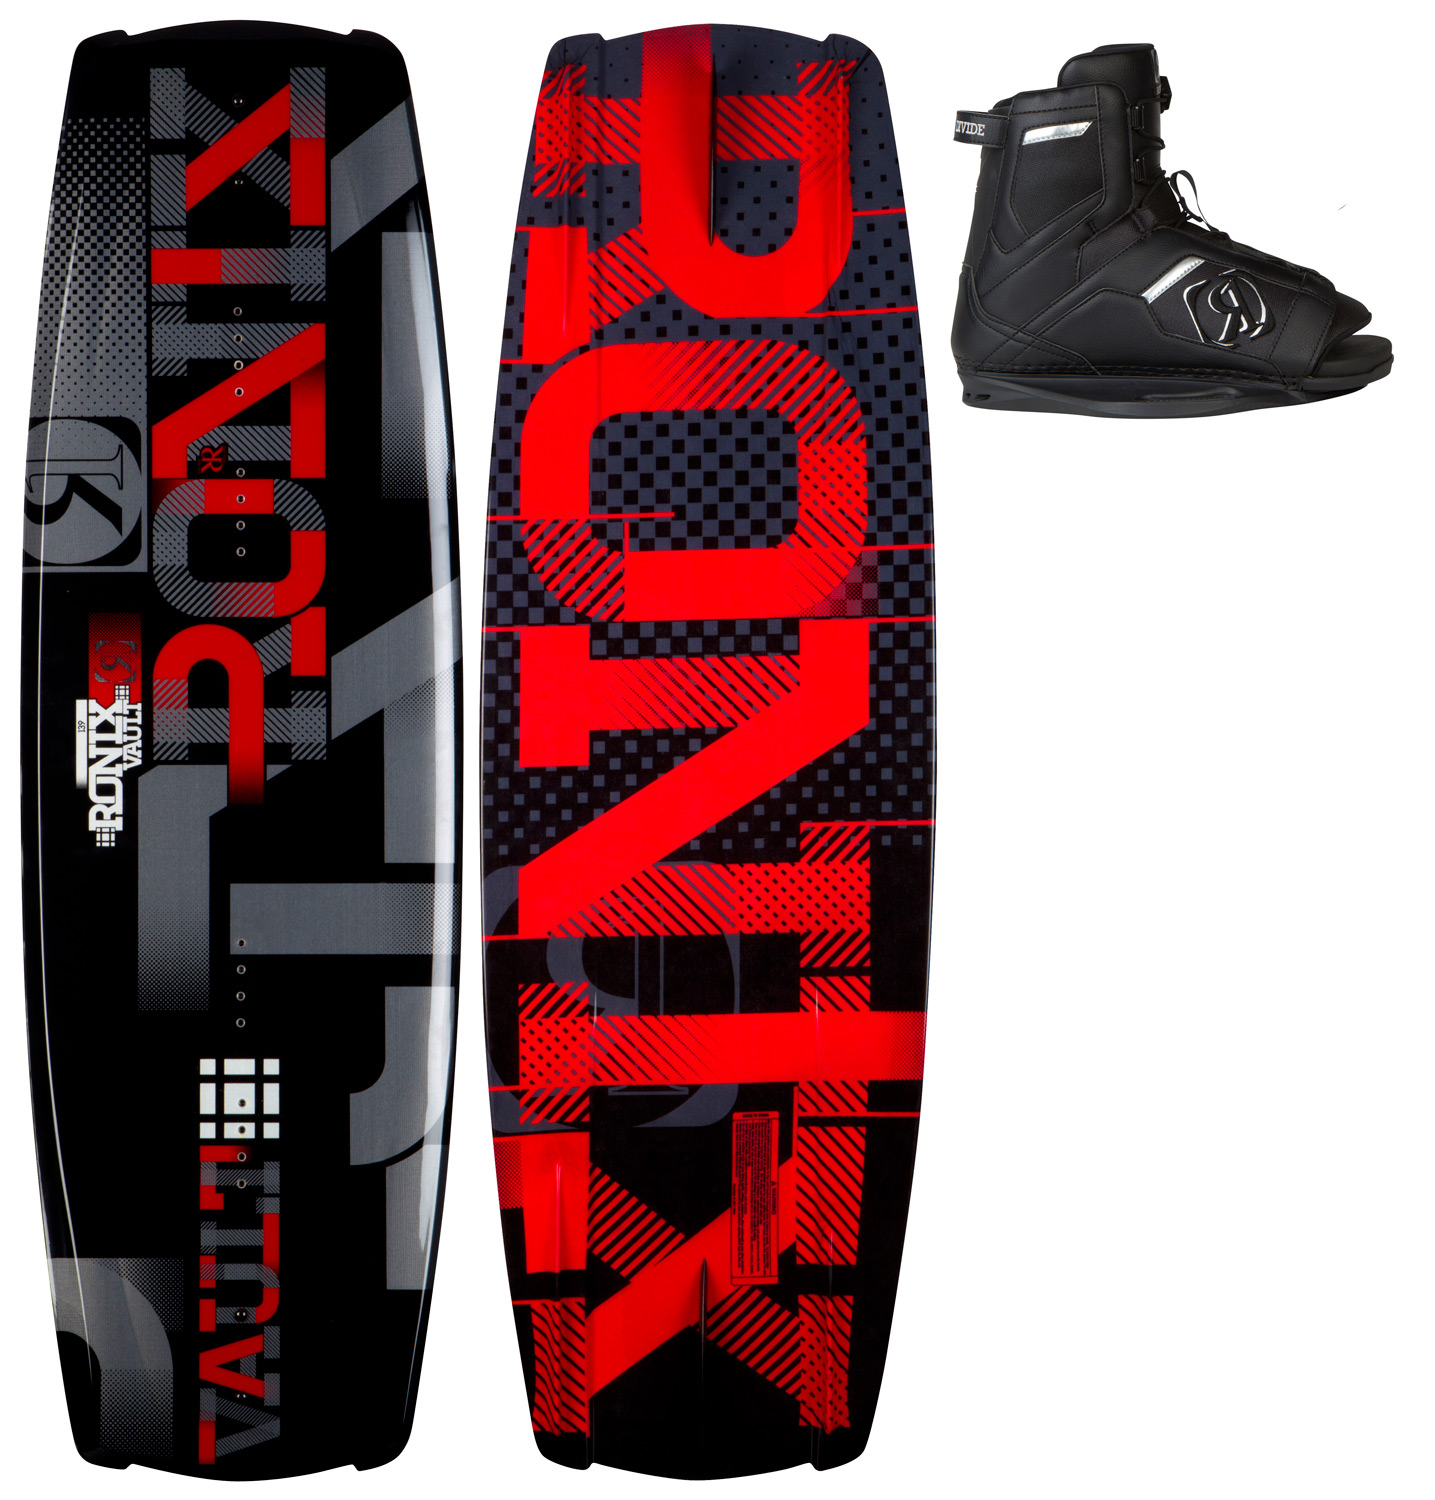 "Wake Gone are the days of leaving the wake's transfer in an unnatural position. The innovative Vault recognizes that your body is crossed up riding toeside, and takes this into consideration with the design of the rocker, and fi n shape/placement. This profile allows the rider to point the board with maximum grip to the wake without requiring excessive attack angle. The design of the heelside was created for a rider facing the boat with a more natural position to point the board to the wake. Who said asymmetrical was only for entry-level riders? Many WWA Nationals and Worlds have been won on the Vault - a series with no limits takes features from several boards in our line. This ride is a platform to develop your riding style - allowing a rider to stand more efficient - redefining the demands needed for the latest in toe/heelside versatility. With the latest in ease of entry and open toe adjustability built with our industry standard, high memory foam the Divide is our most popular open toe boot. Support you would expect from a pro model boot, and ease of entry that will let you save your energy for after you have jumped off the swim deck. In fact, this boot has features that are not found in some of the other models in the line. Notably, this boot is the lightest boot we have ever made. Built with ultra-light, ultra-cush, Stage 1 foam to create the foundation of a fi ne piece of footwear. The fi nest in ease of entry and open toe adjustability.Key Features of the Ronix Vault Wakeboard: Toeside rail is thinned out to sit deeper in the water creating additional grip from this sharp profile Toeside fi ns are deeper, longer and closer to the rail for a strong/stable edge hold Heelside rail starts off softer/fuller for a mellower transition, then blends to a more vertical sidewall with less resistance on the water Heelside fi ns are shorter and further from the rail for a quicker release on spinning tricks 4 molded asymmetric fi ns shape - track true in a straight line, but break free easier with more fl oat in a side slide position A wider profile creates a bigger sweet spot riding in any water condition 2 fiberglass 1.7"" fi ns Key Features of the Ronix Divide Boots: Universal tongue - our most adjustable boot fitting multiple sizes Built in J-bars improve heel hold Articulating cuff - the boot fl exes with the rider without boot distortion Low friction eyelets Designed with the everyday rider in mind - $349.99"